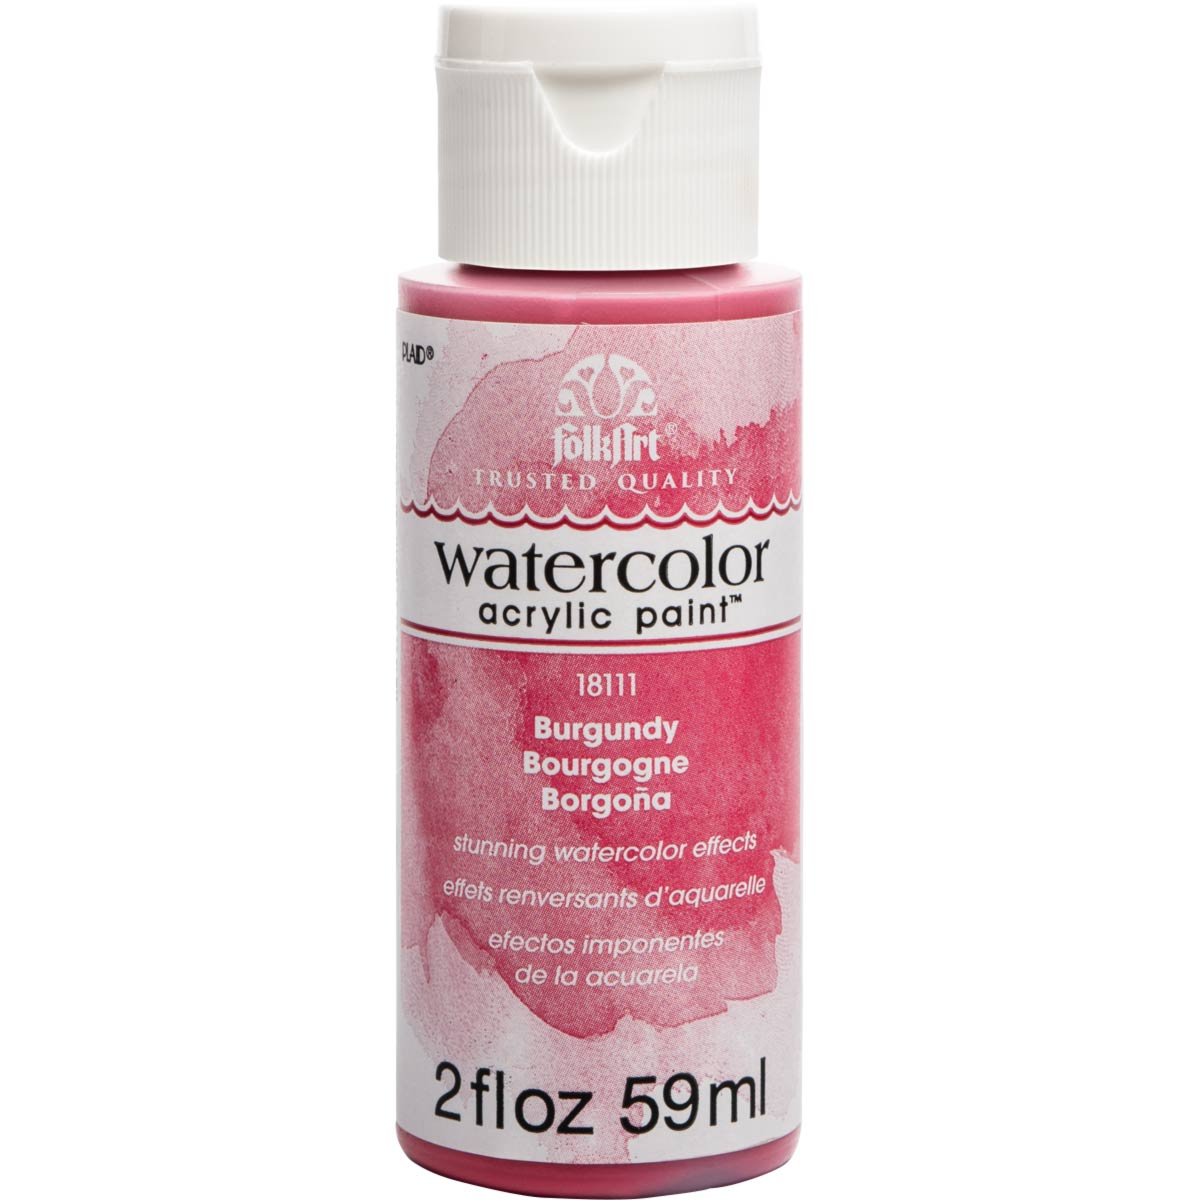 FolkArt ® Watercolor Acrylic Paint™ - Burgundy, 2 oz. - 18111